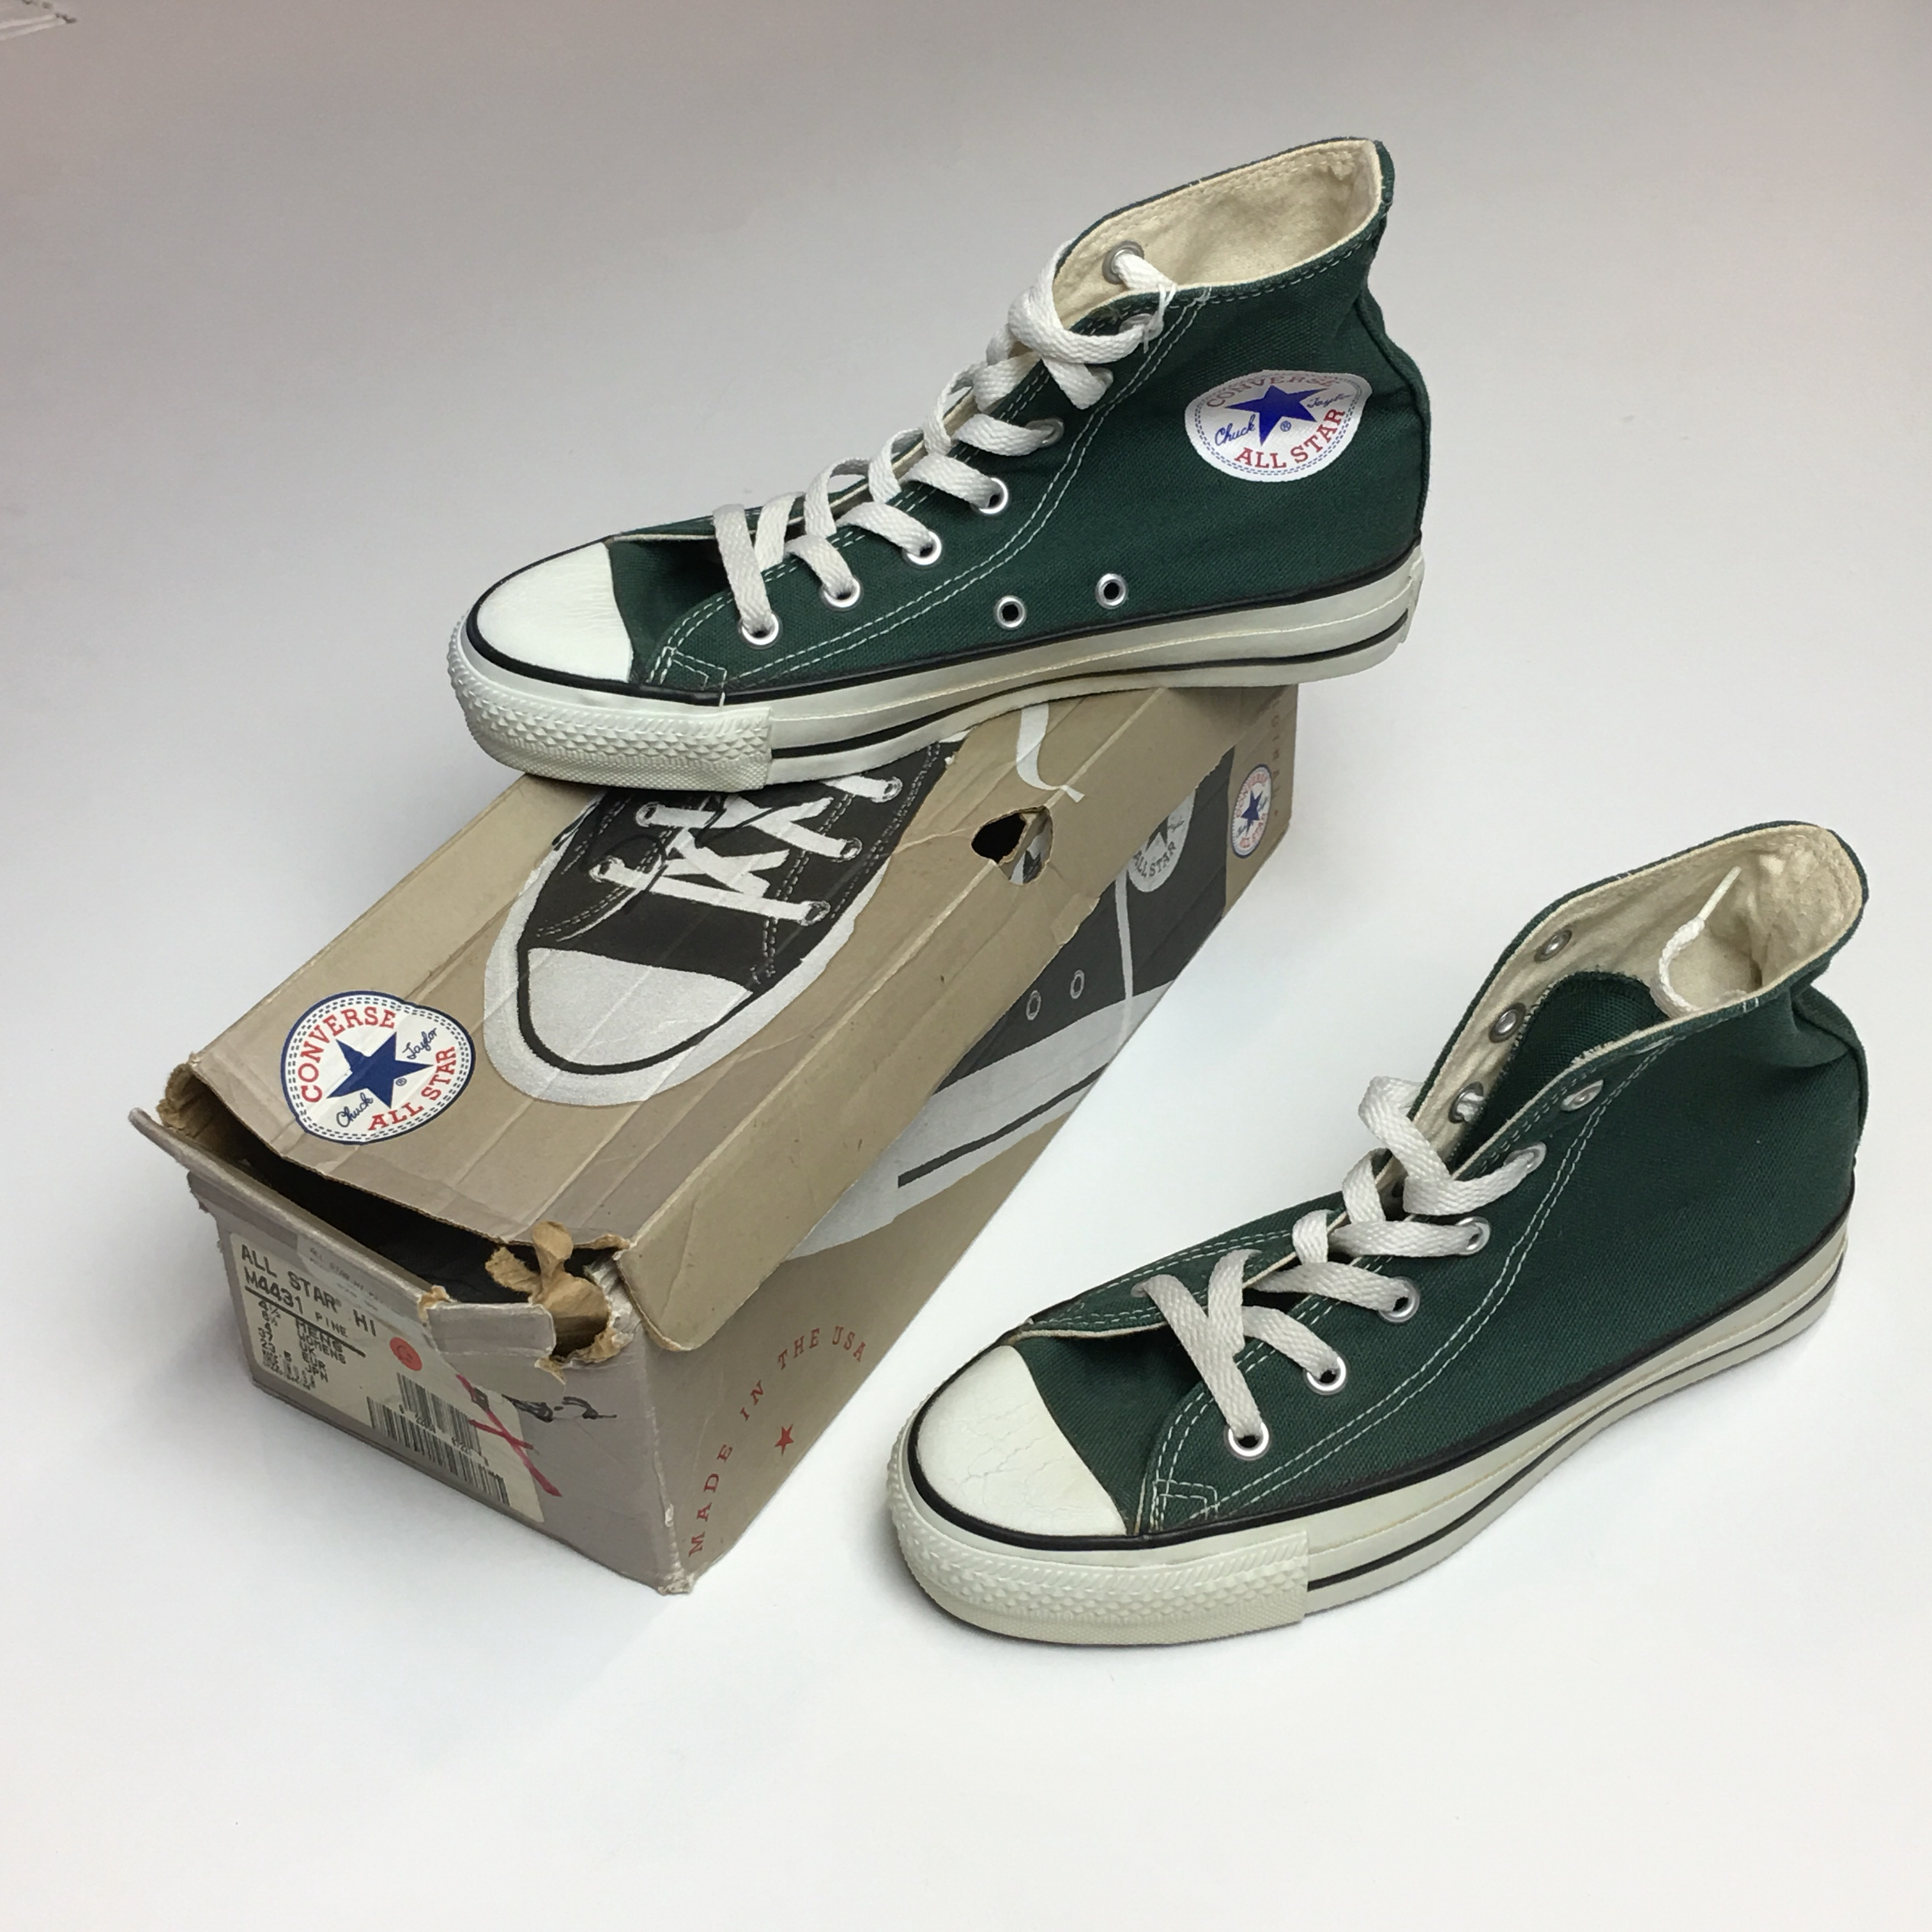 Deadstock 90s Made in USA CONVERSE CHUCK Depop